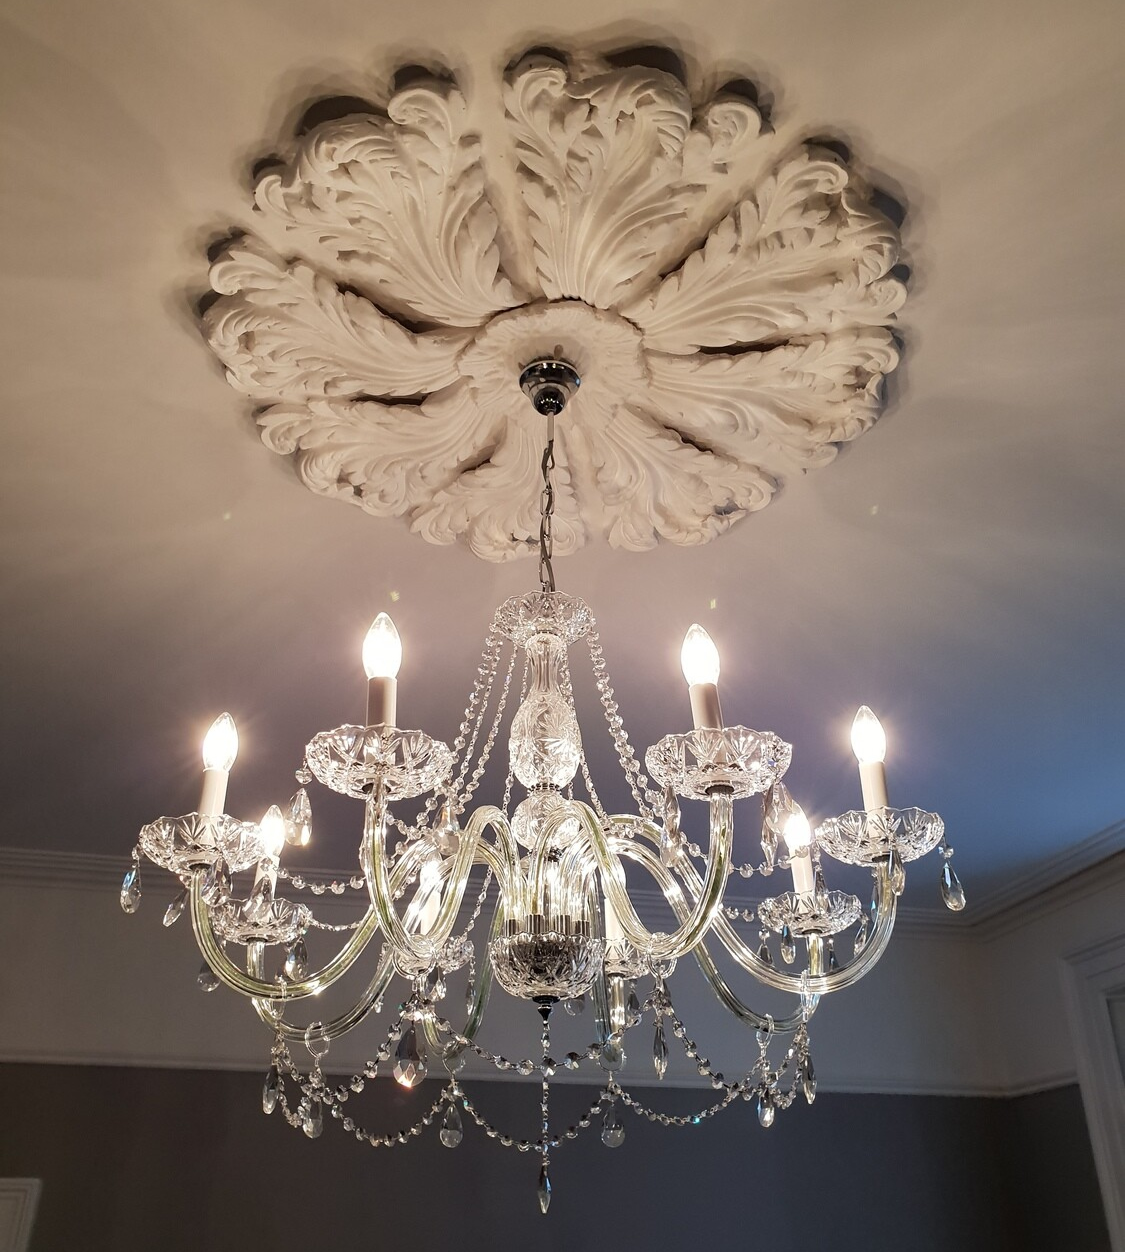 Aramat 8 arm Chandelier